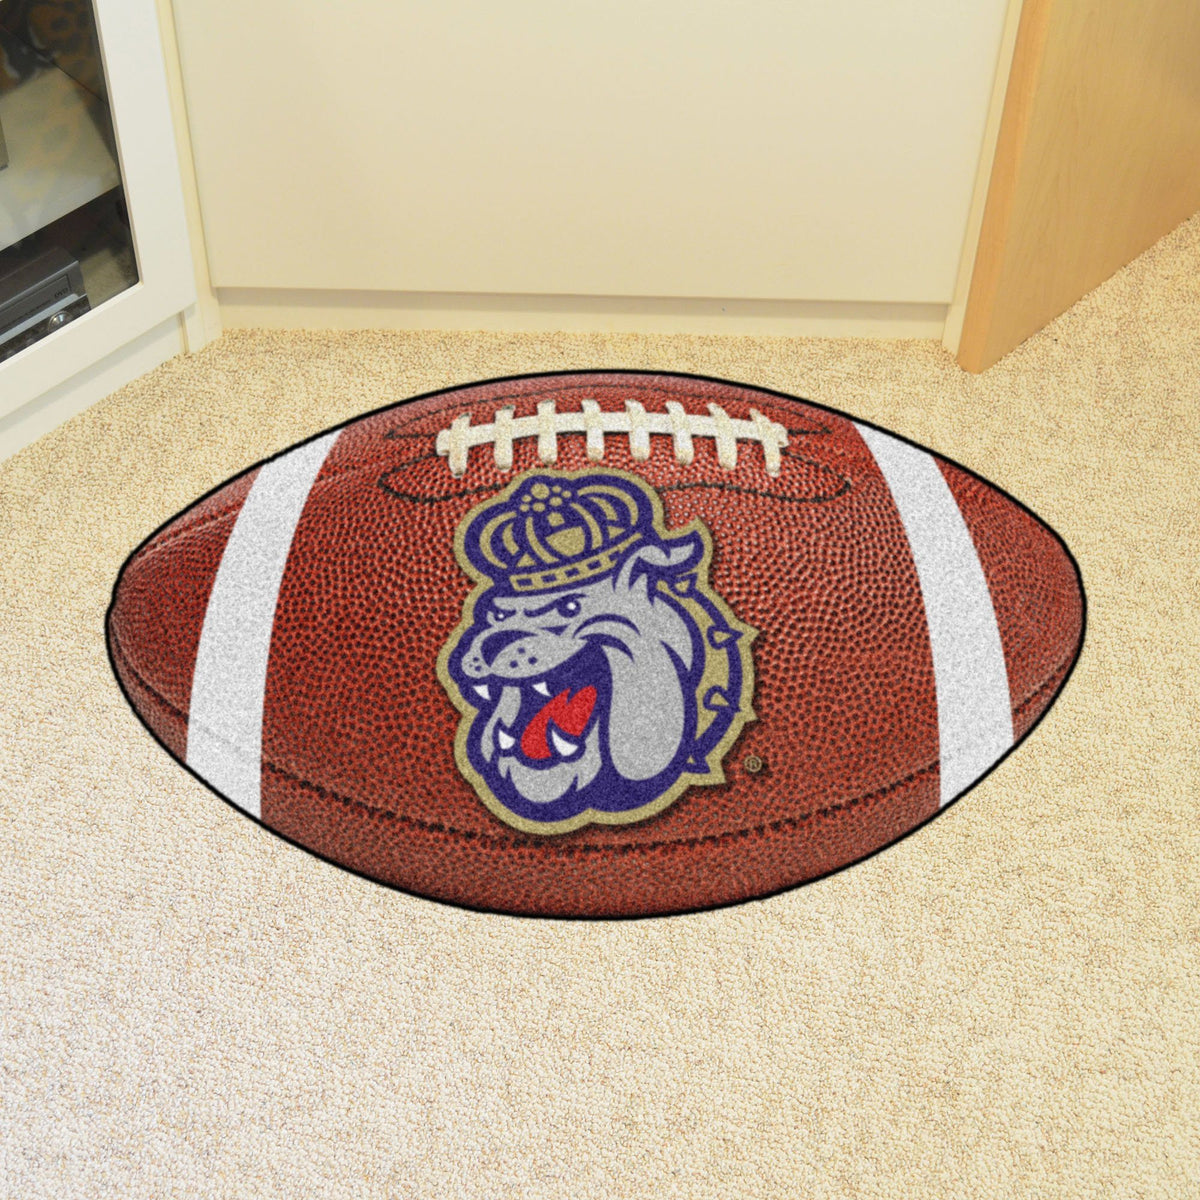 Collegiate - Football Mat: A - K Collegiate Mats, Rectangular Mats, Football Mat, Collegiate, Home Fan Mats James Madison